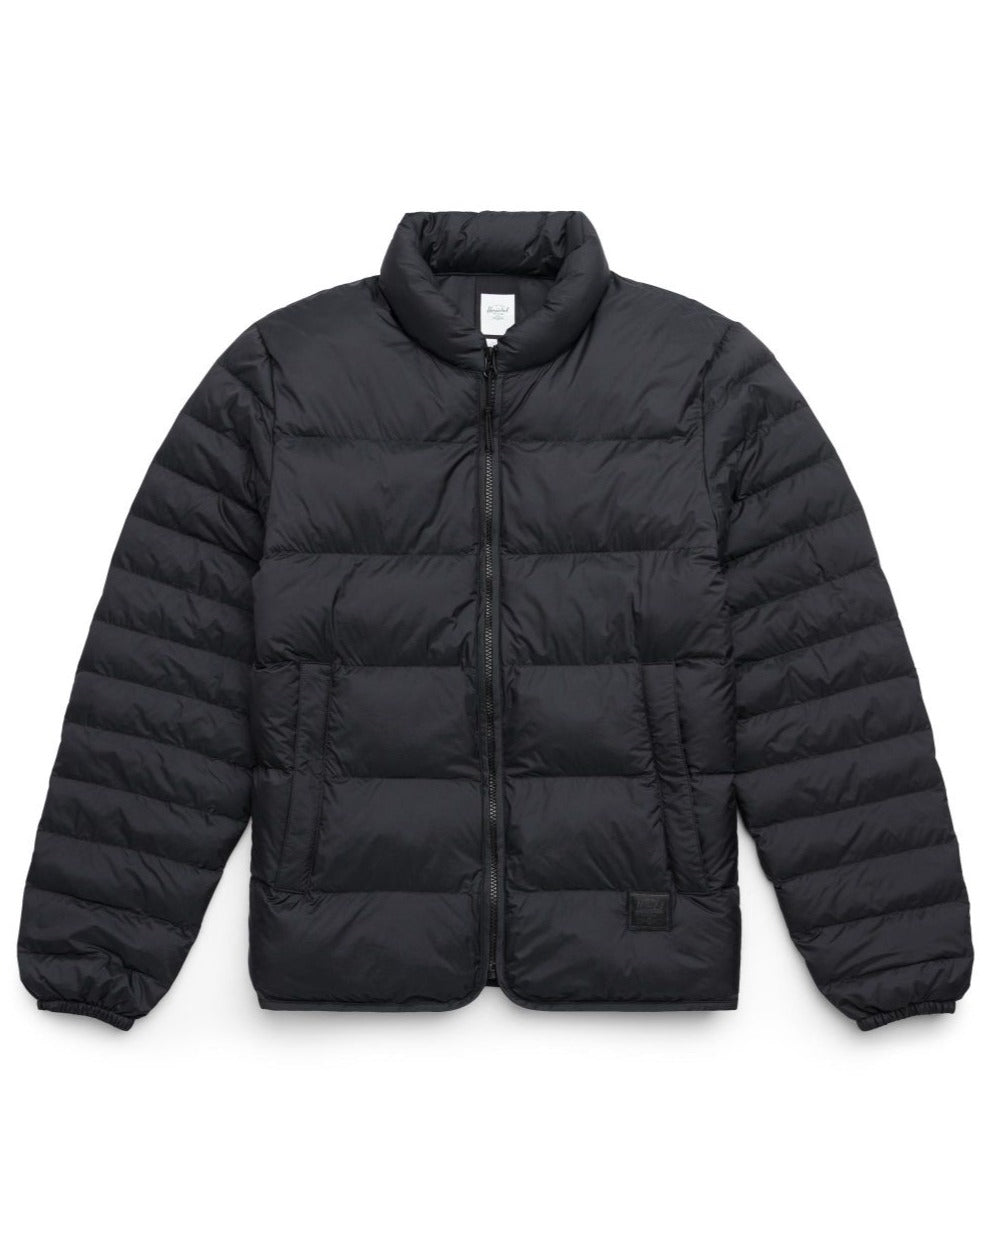 HERSCHEL // High Fill jacket